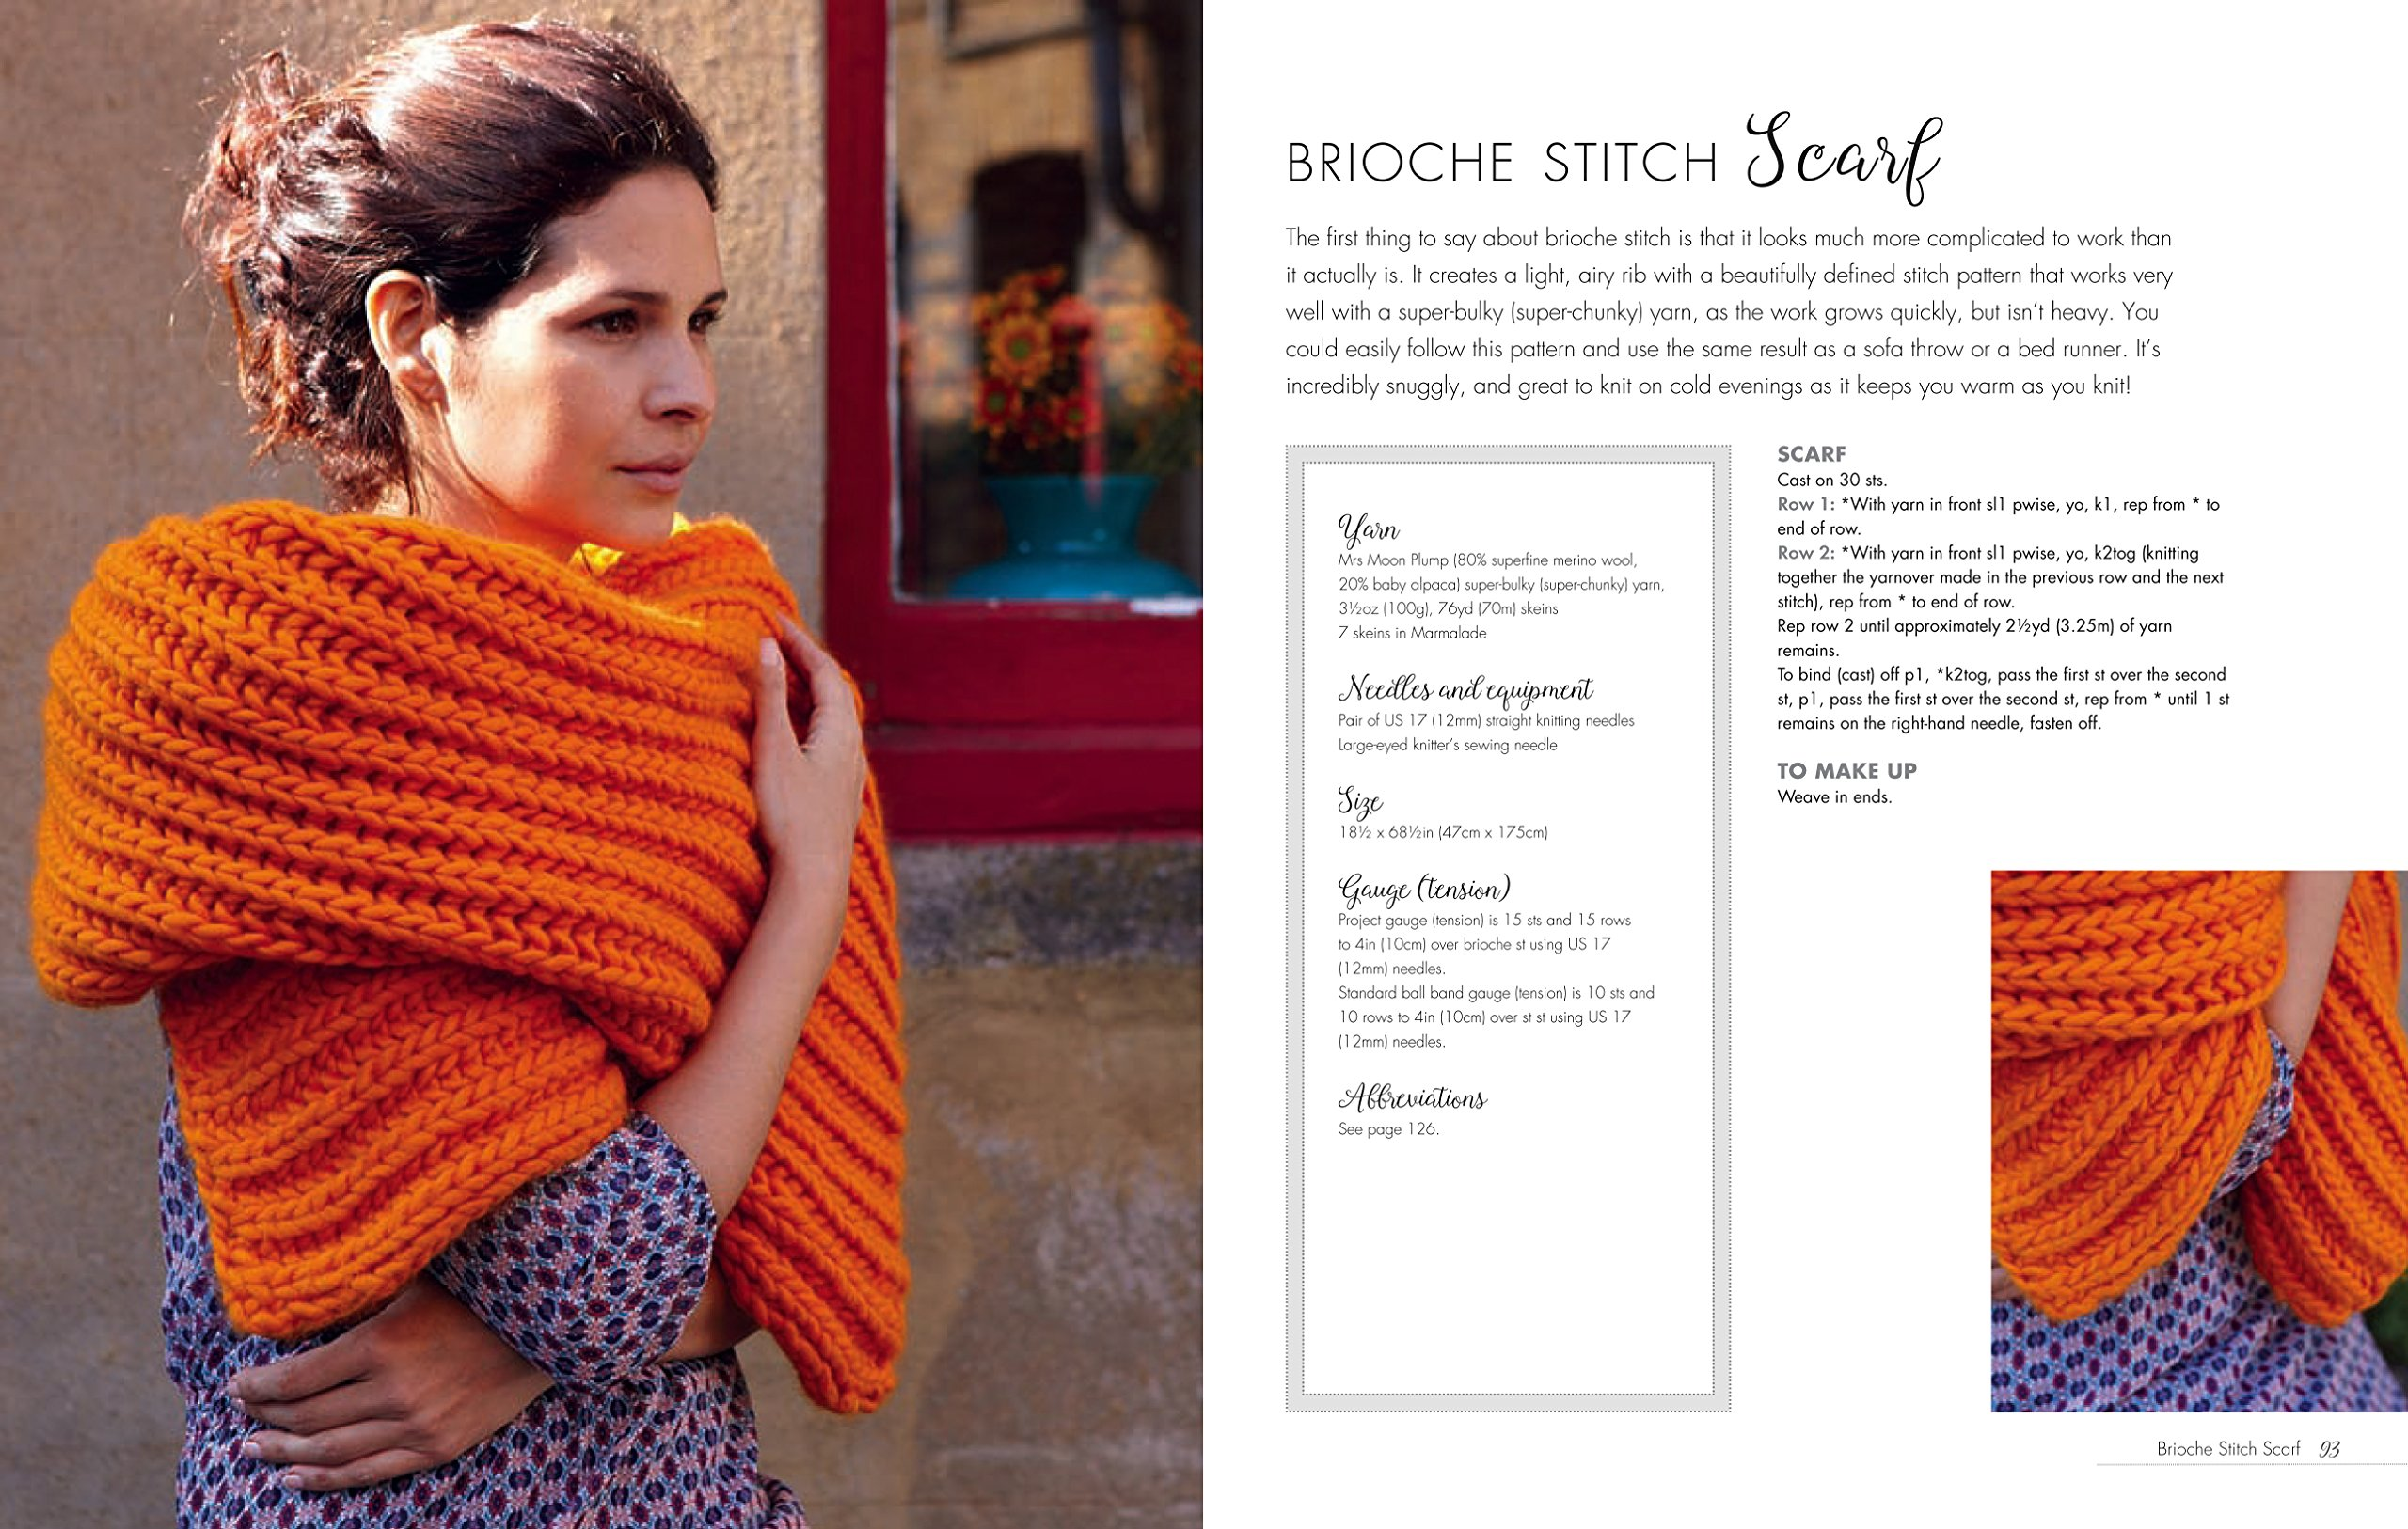 Simple Chic Knits  35 stylish patterns to knit in no time  Karen Miller a1d4a6d5c